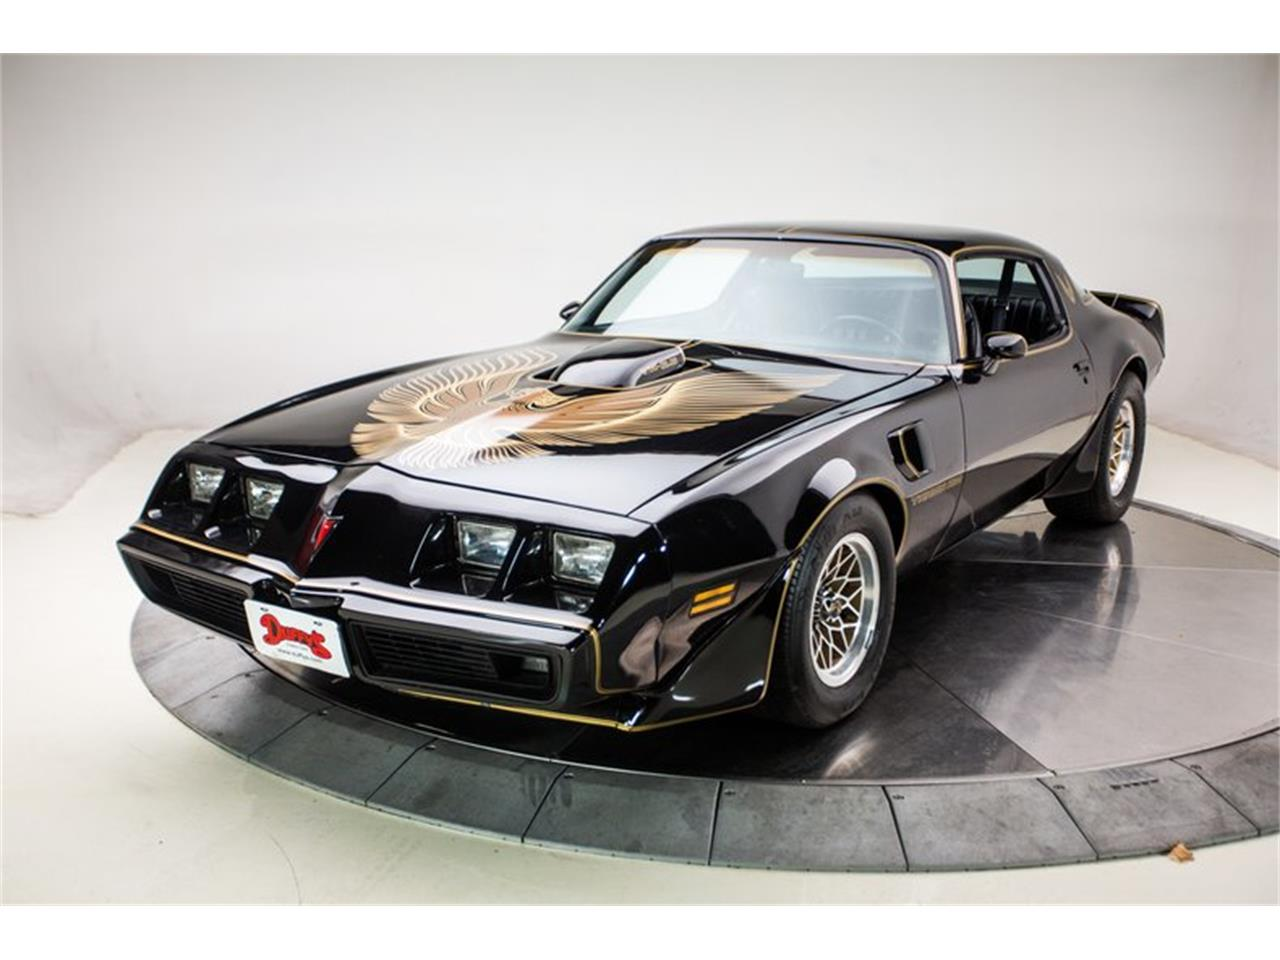 Large Picture of '81 Pontiac Firebird Trans Am located in Iowa - $29,950.00 - OV9G